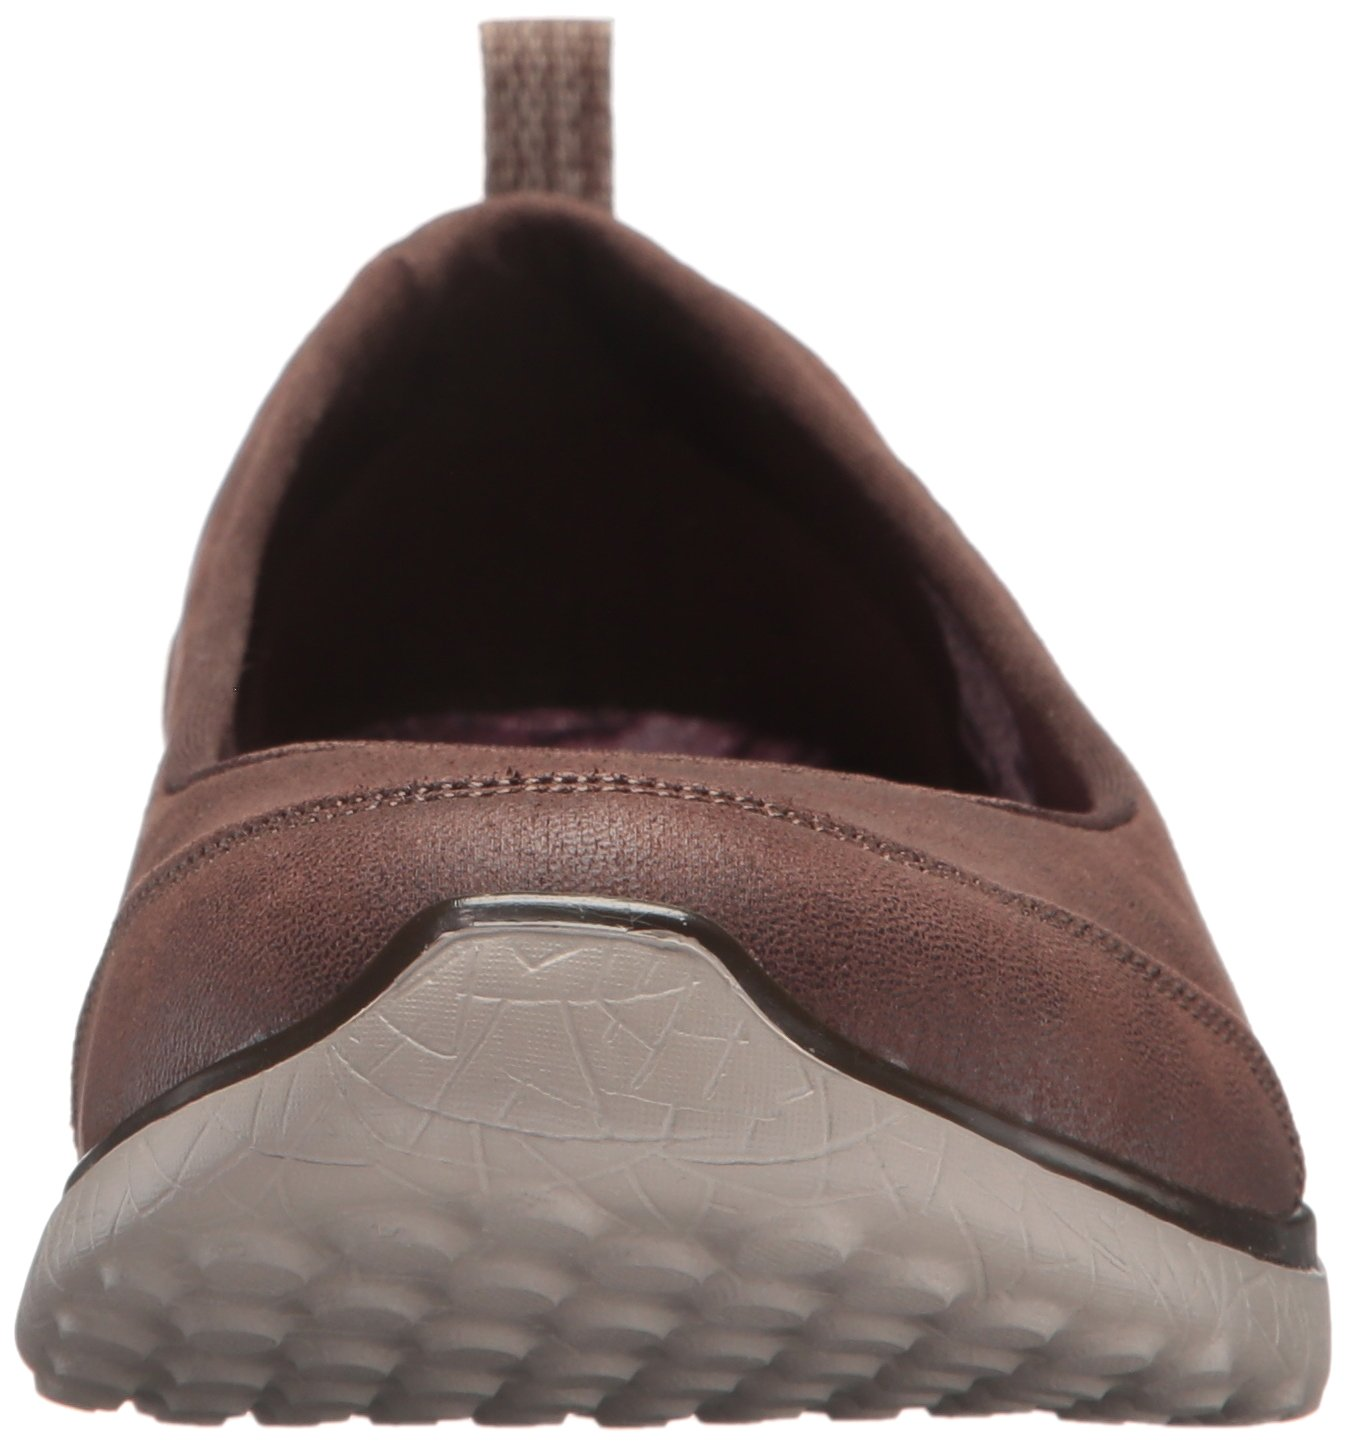 Skechers Women's Microburst Lightness US|Brown Sneaker B0748B1QS2 7 B(M) US|Brown Lightness 2d097c